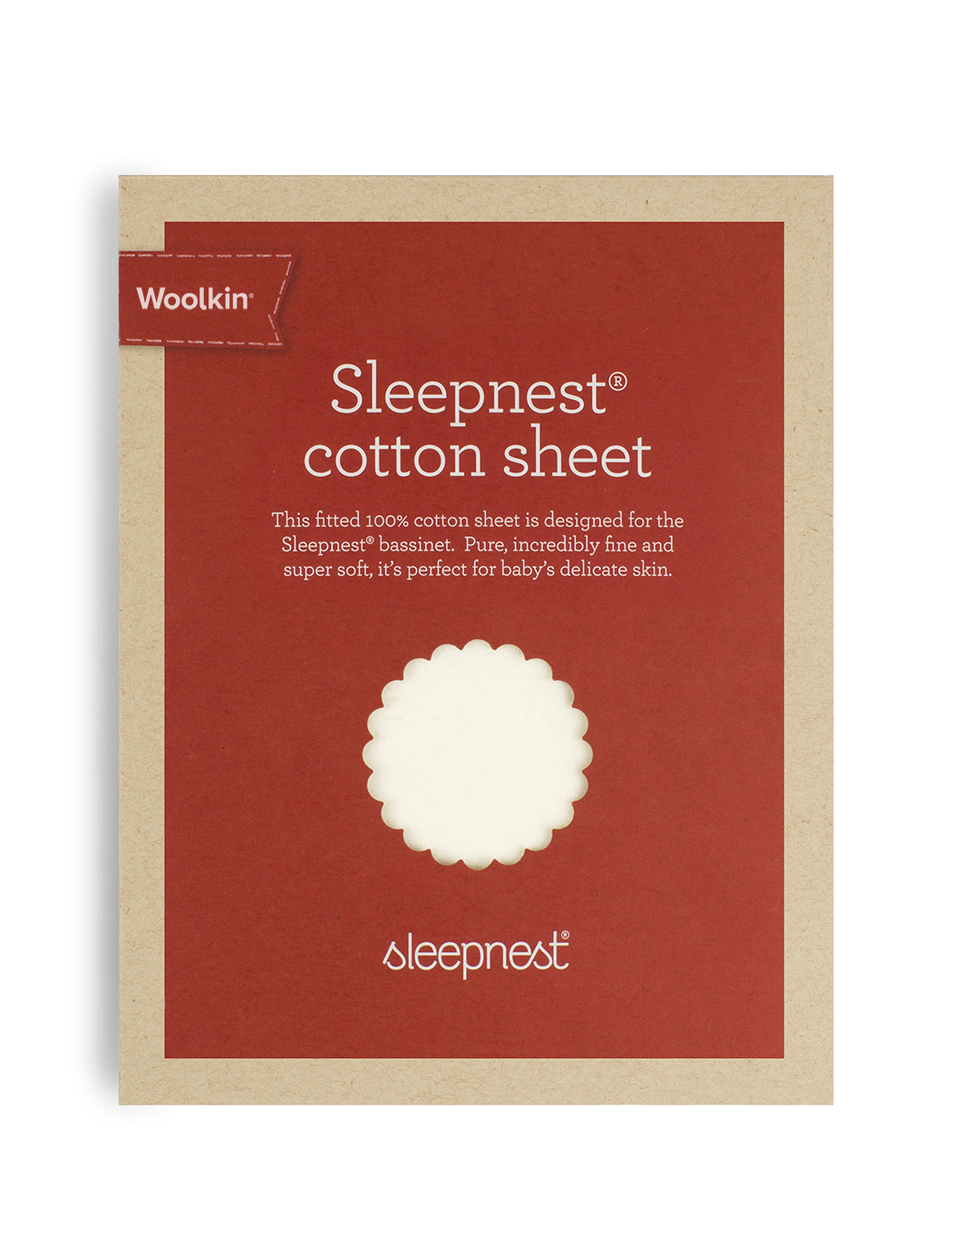 Sleepnest™ Cotton Sheet - Woolkin